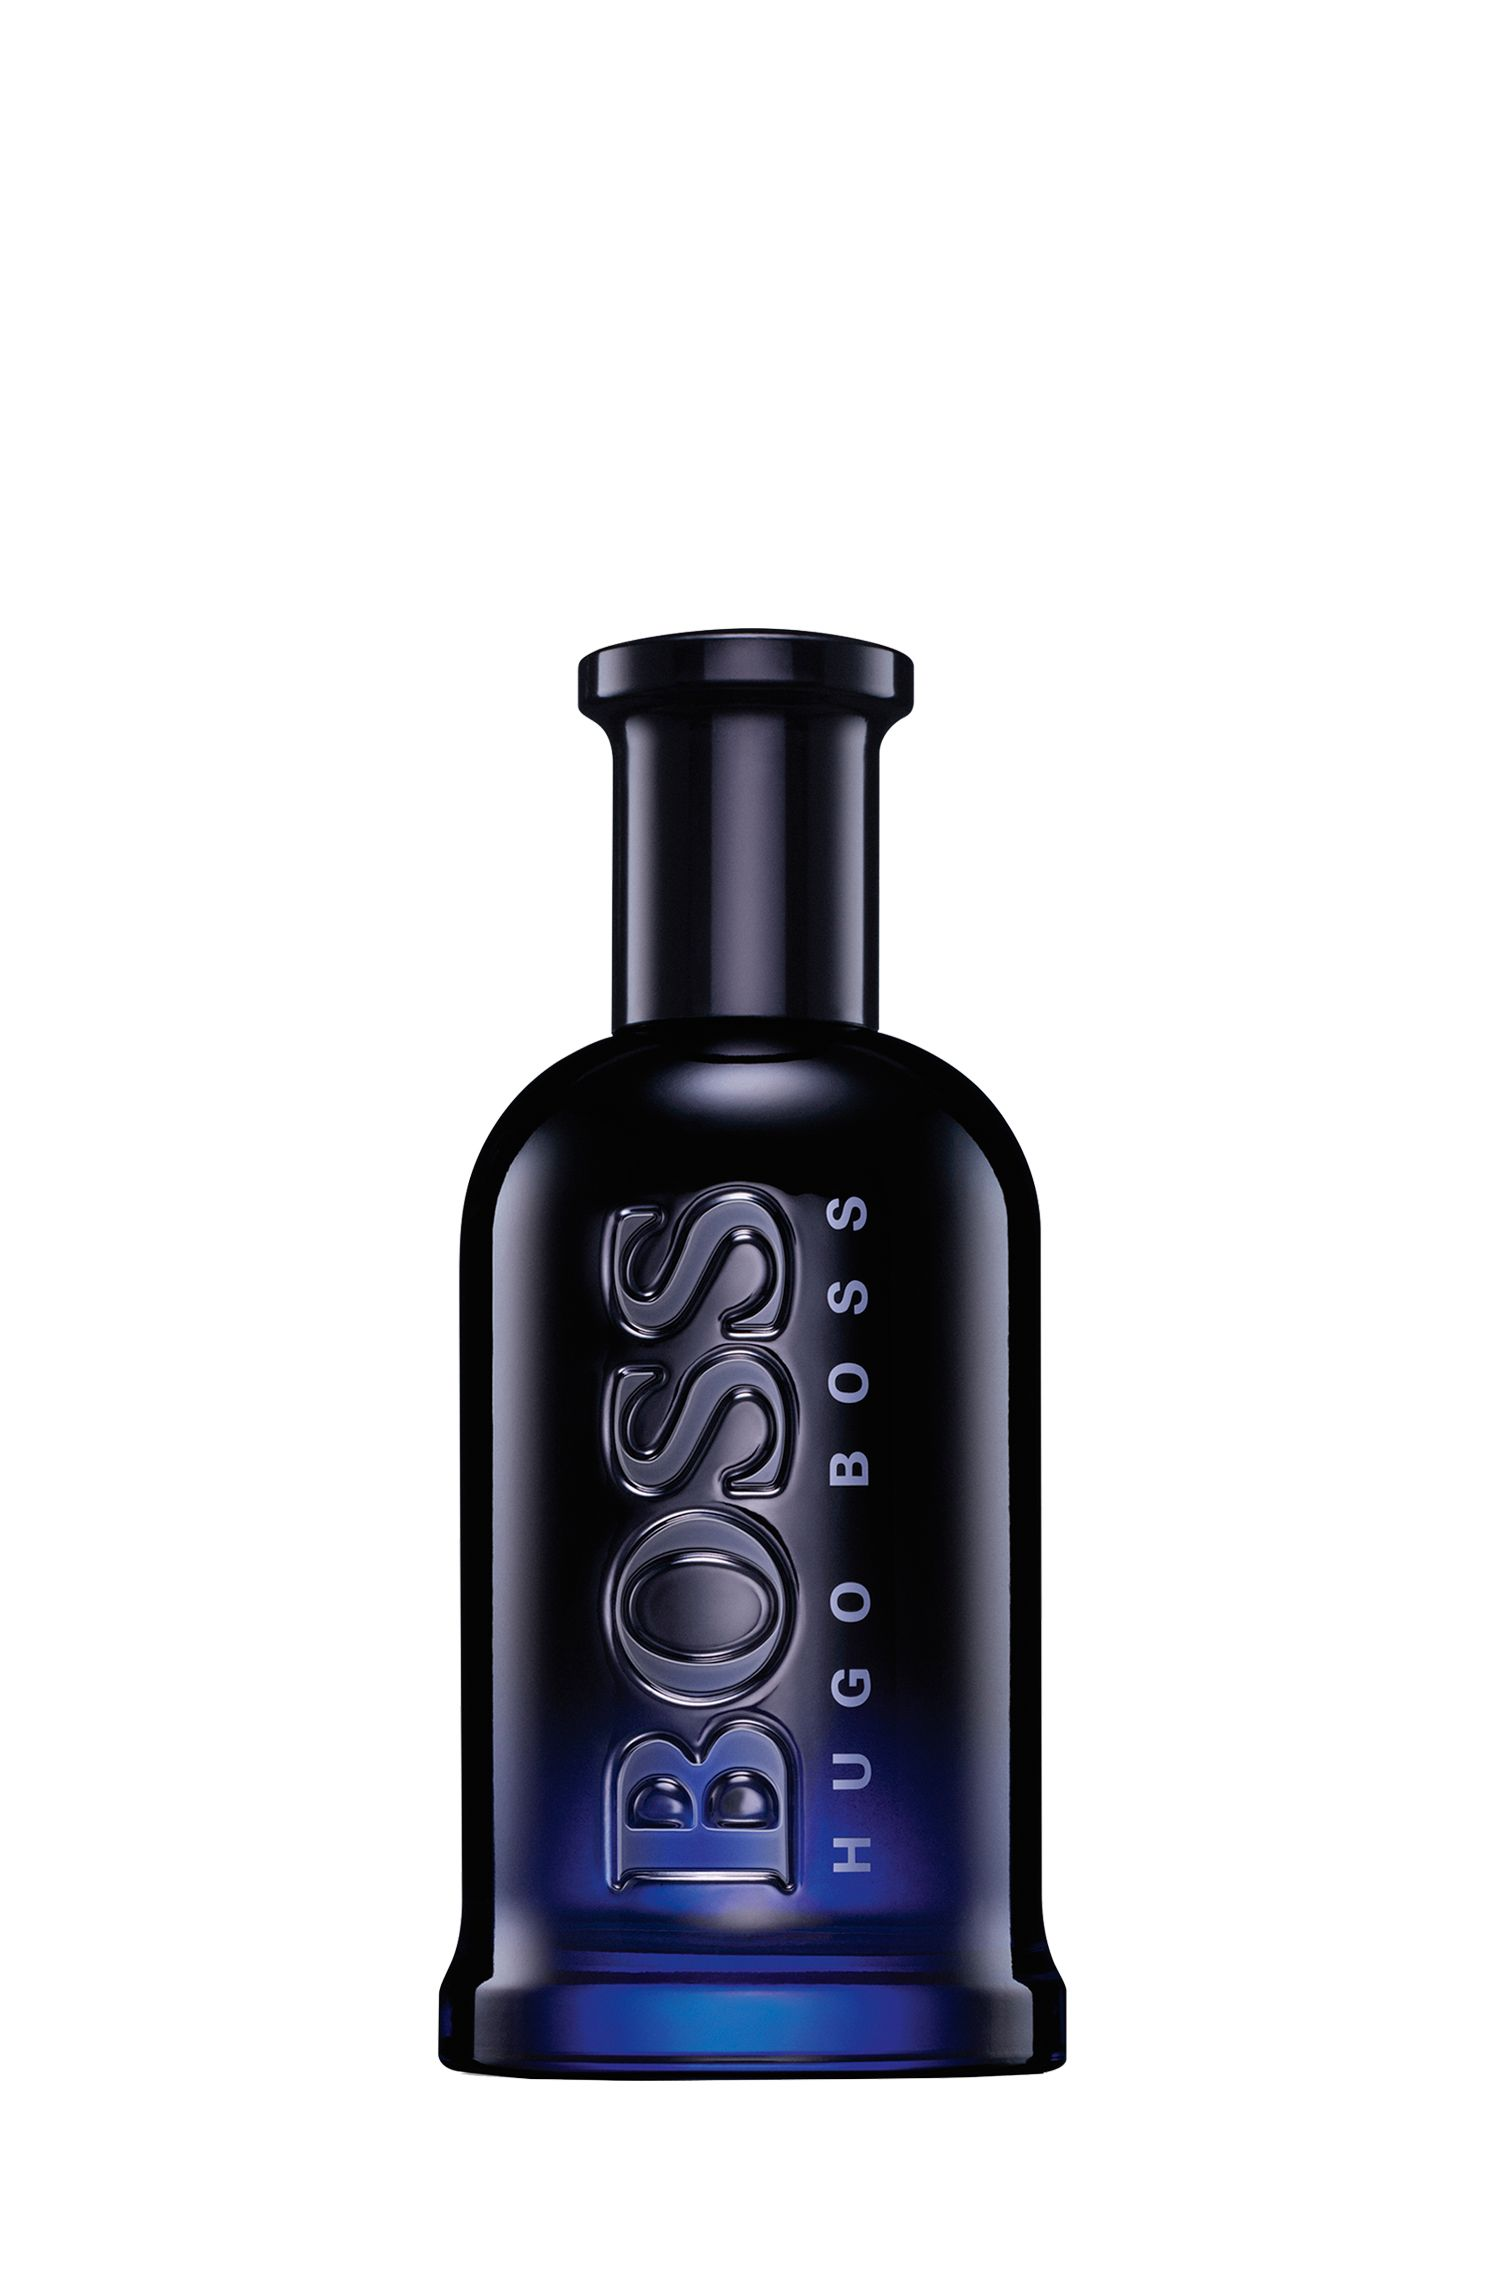 Eau de toilette BOSS Bottled Night da 50 ml